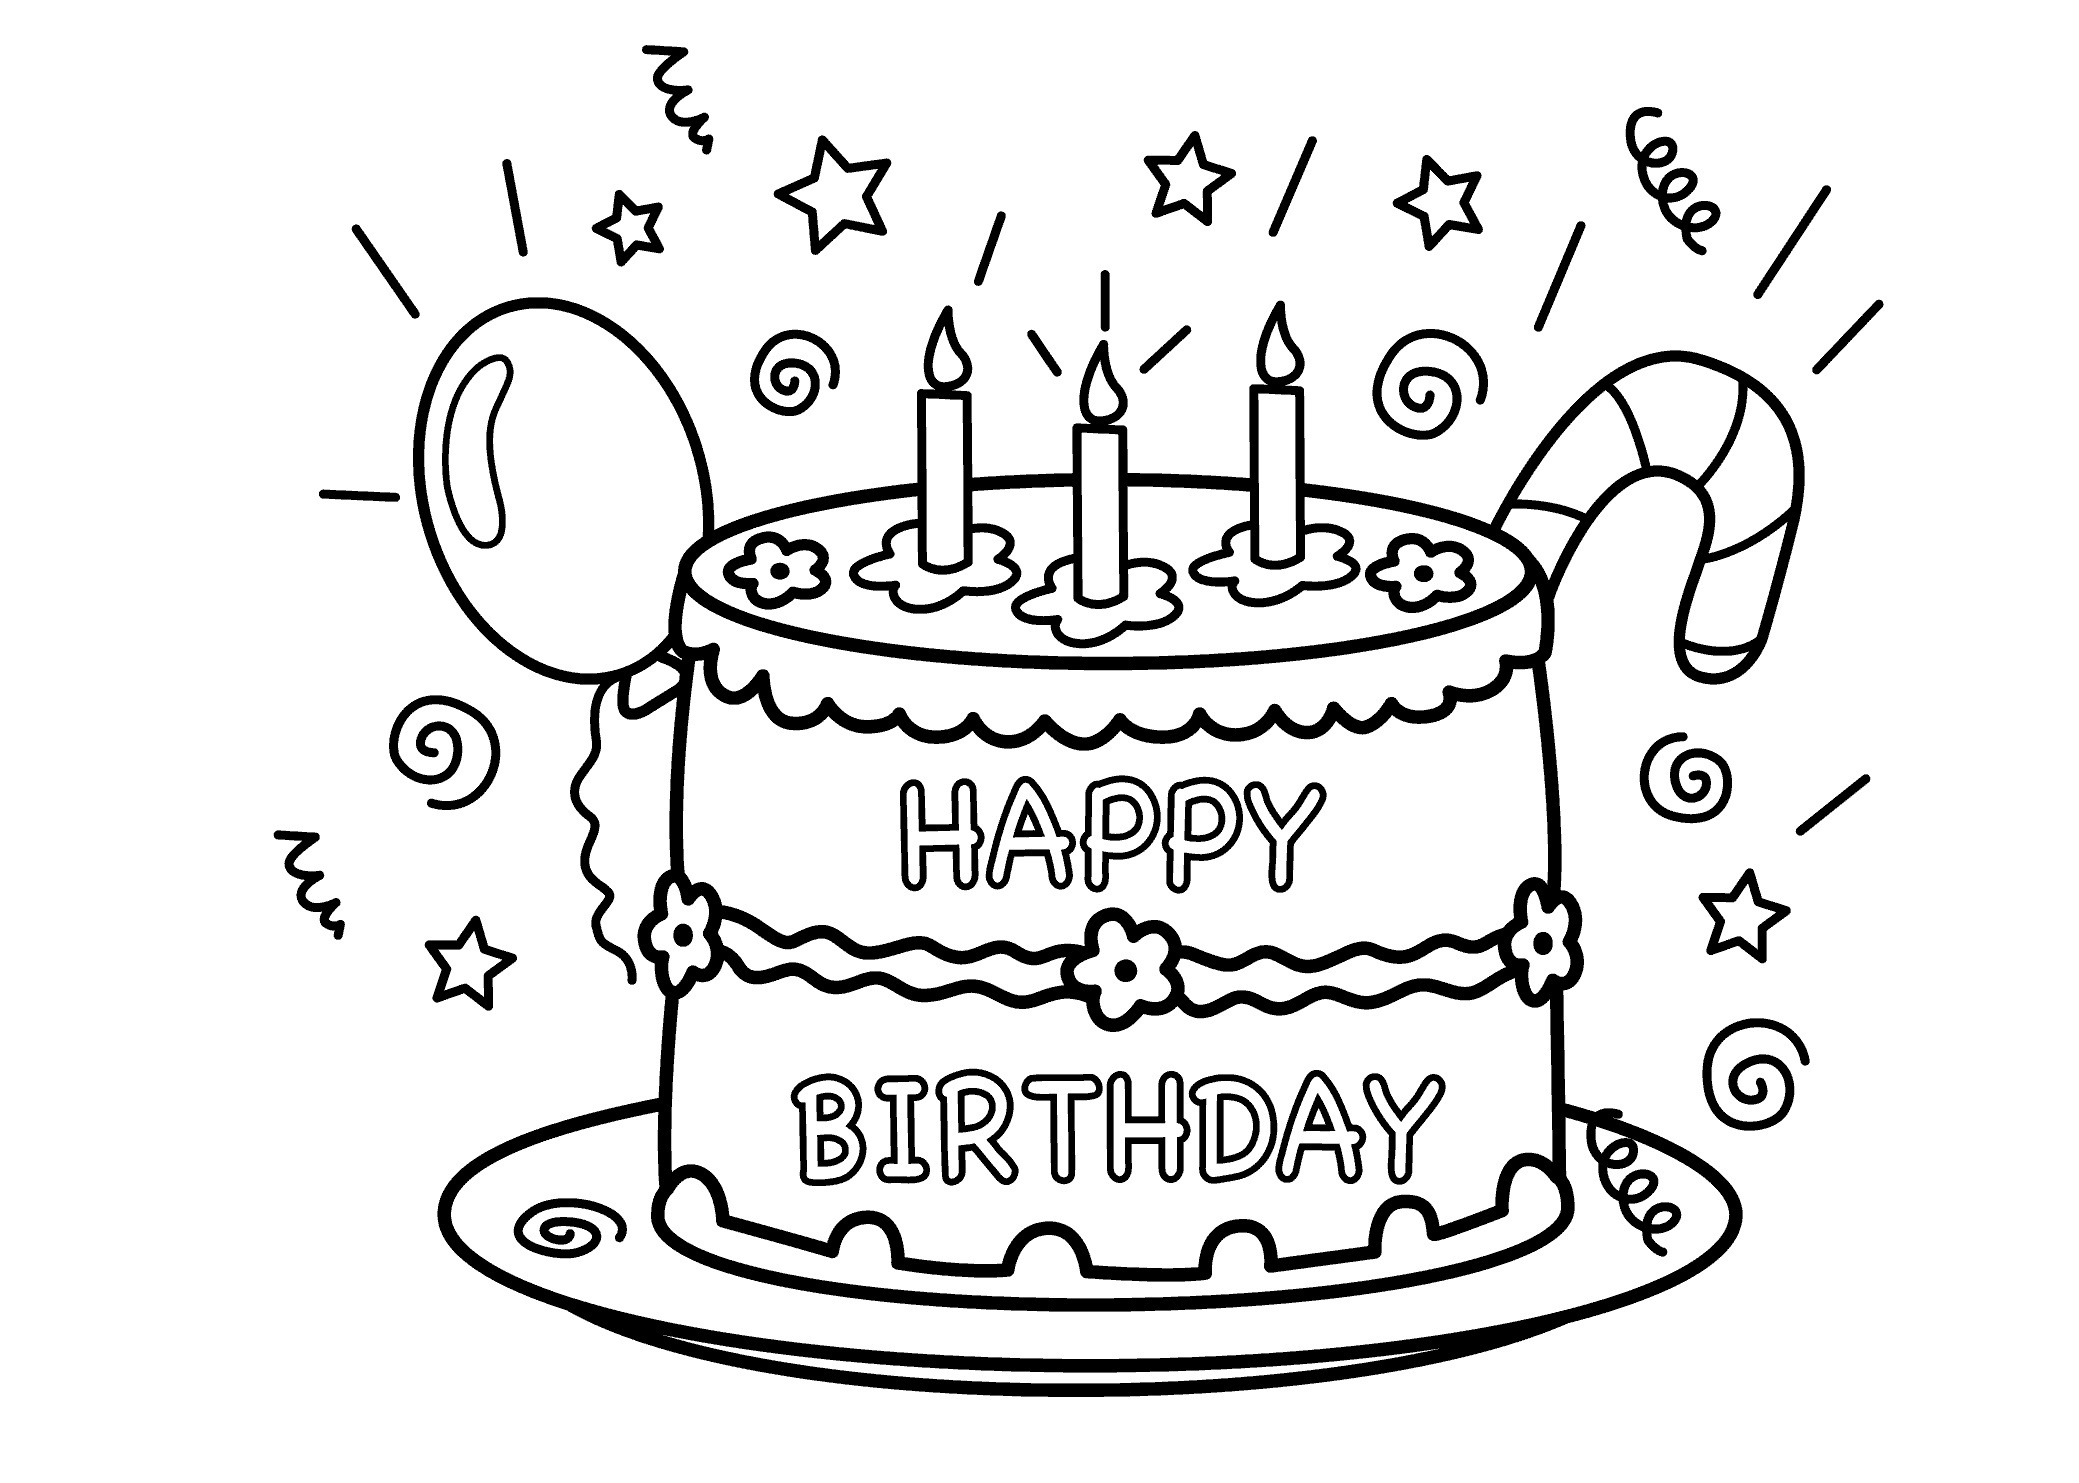 Free Printable Birthday Cake Coloring Pages For Kids Coloring Pages For Birthday